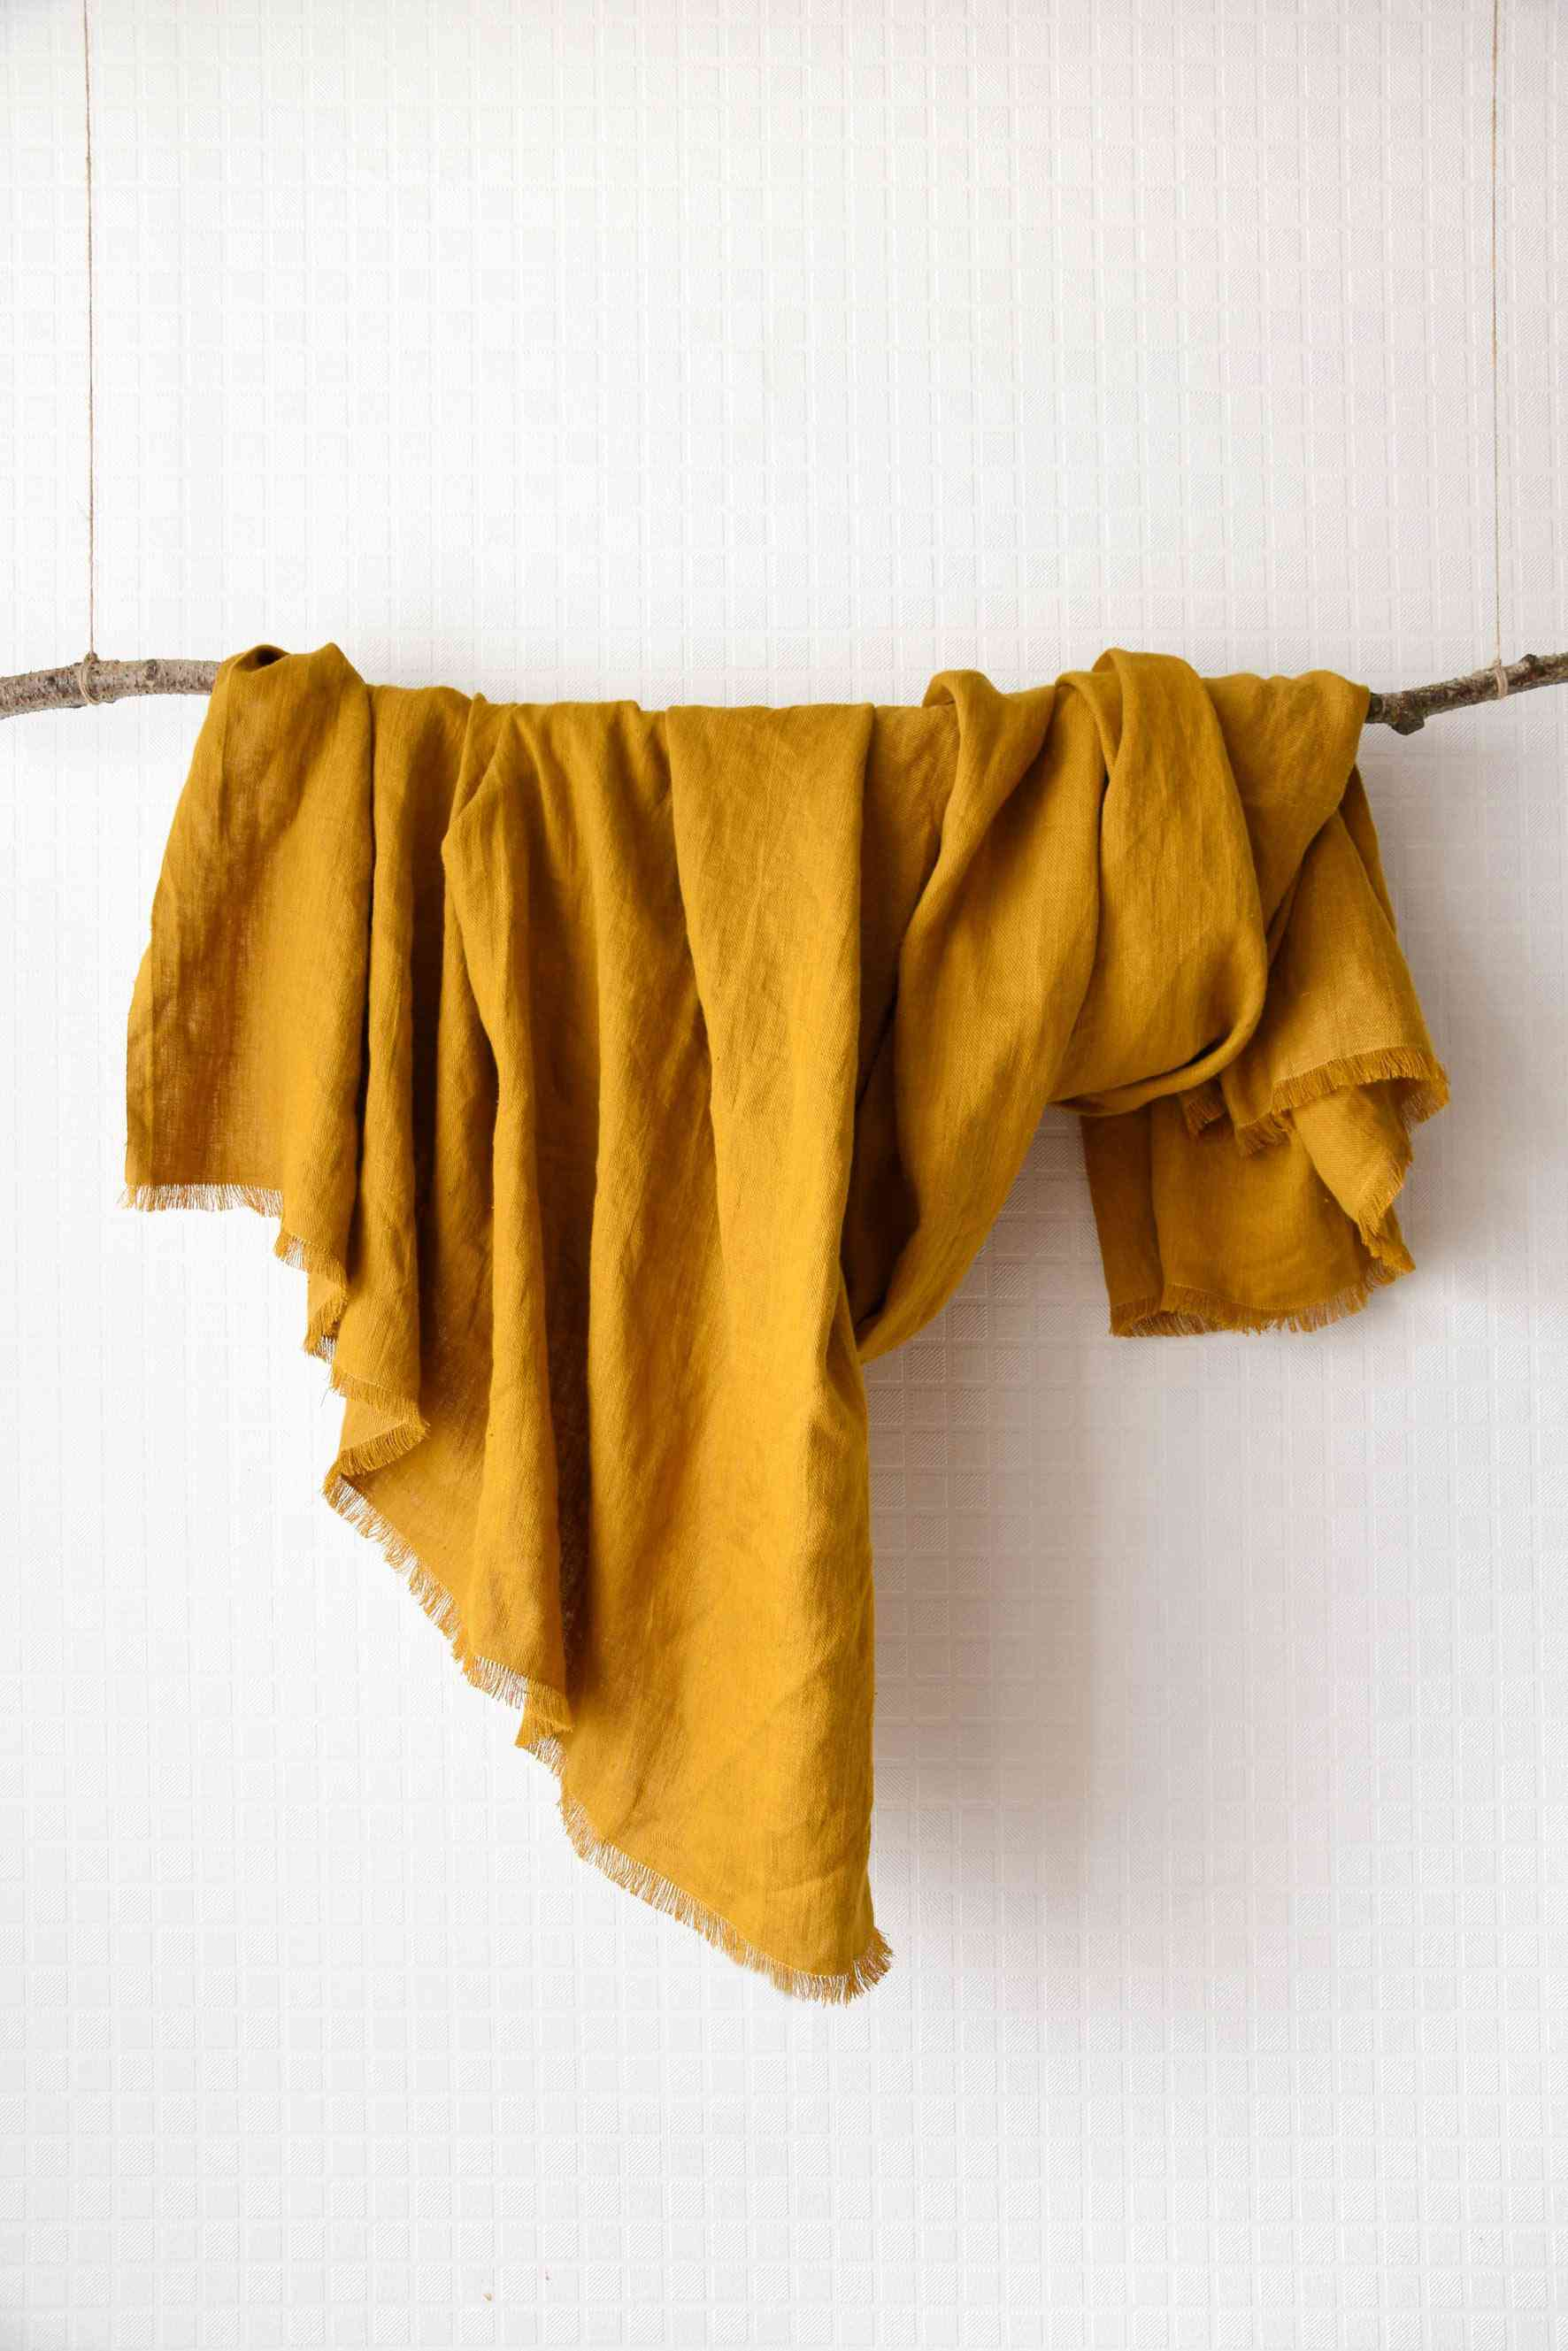 A mustard-colored linen throw draped over a branch.